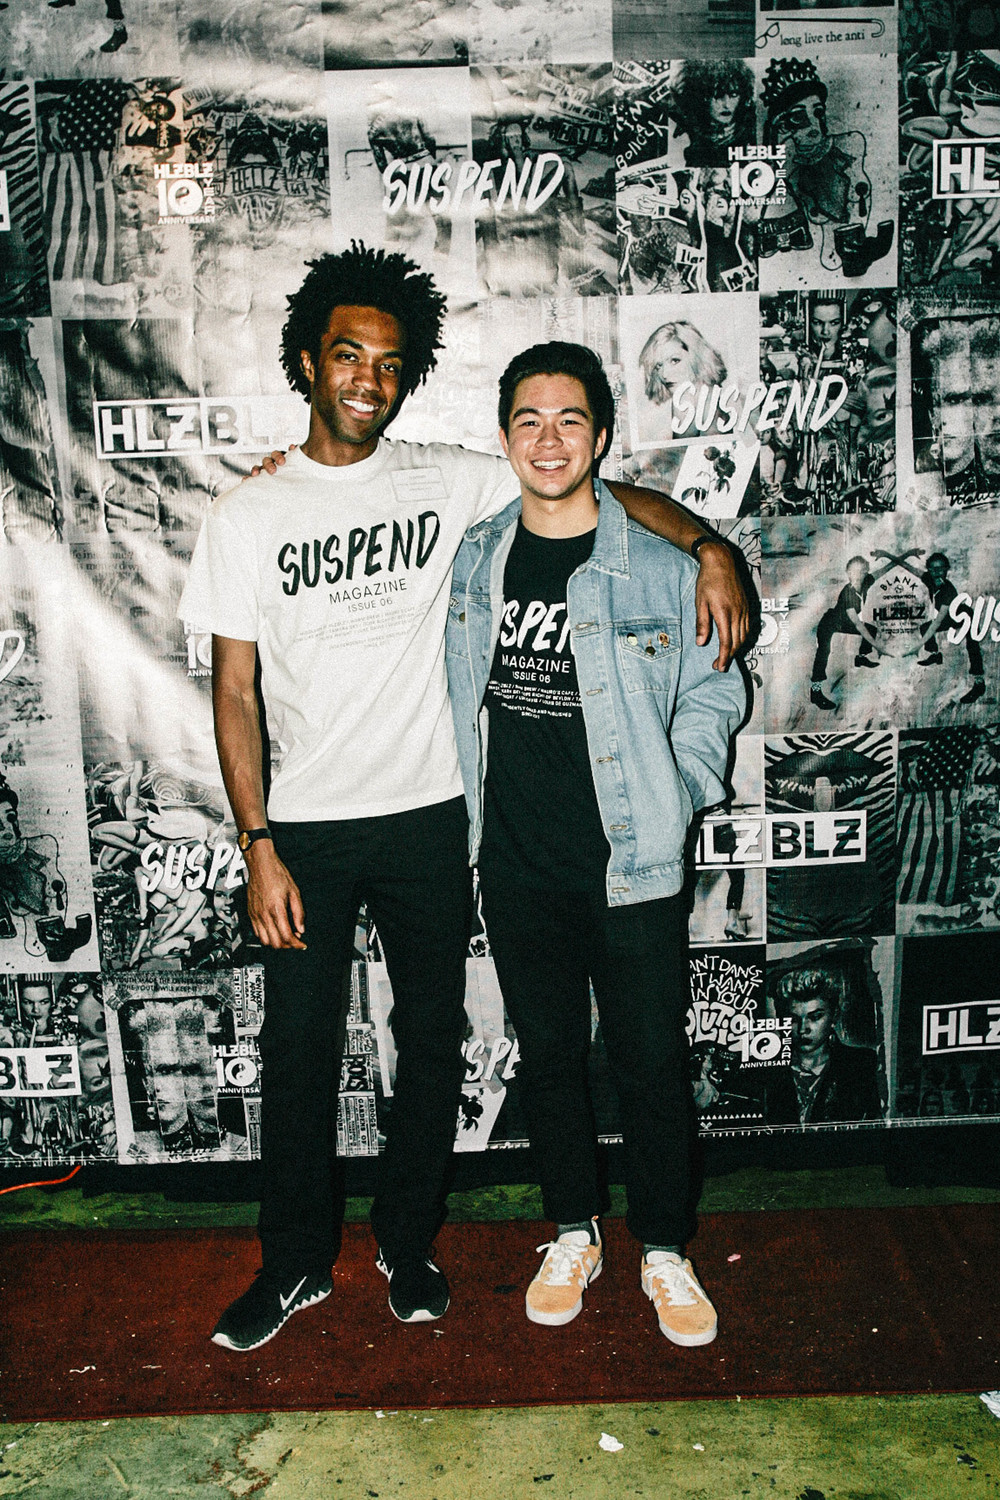 Jonathan Tate and Brennan de Aguirre of SUSPEND at the ISSUE 06 Release Party x 10YR HLZBLZ Anniversary (Feb 11) at Globe Theater.